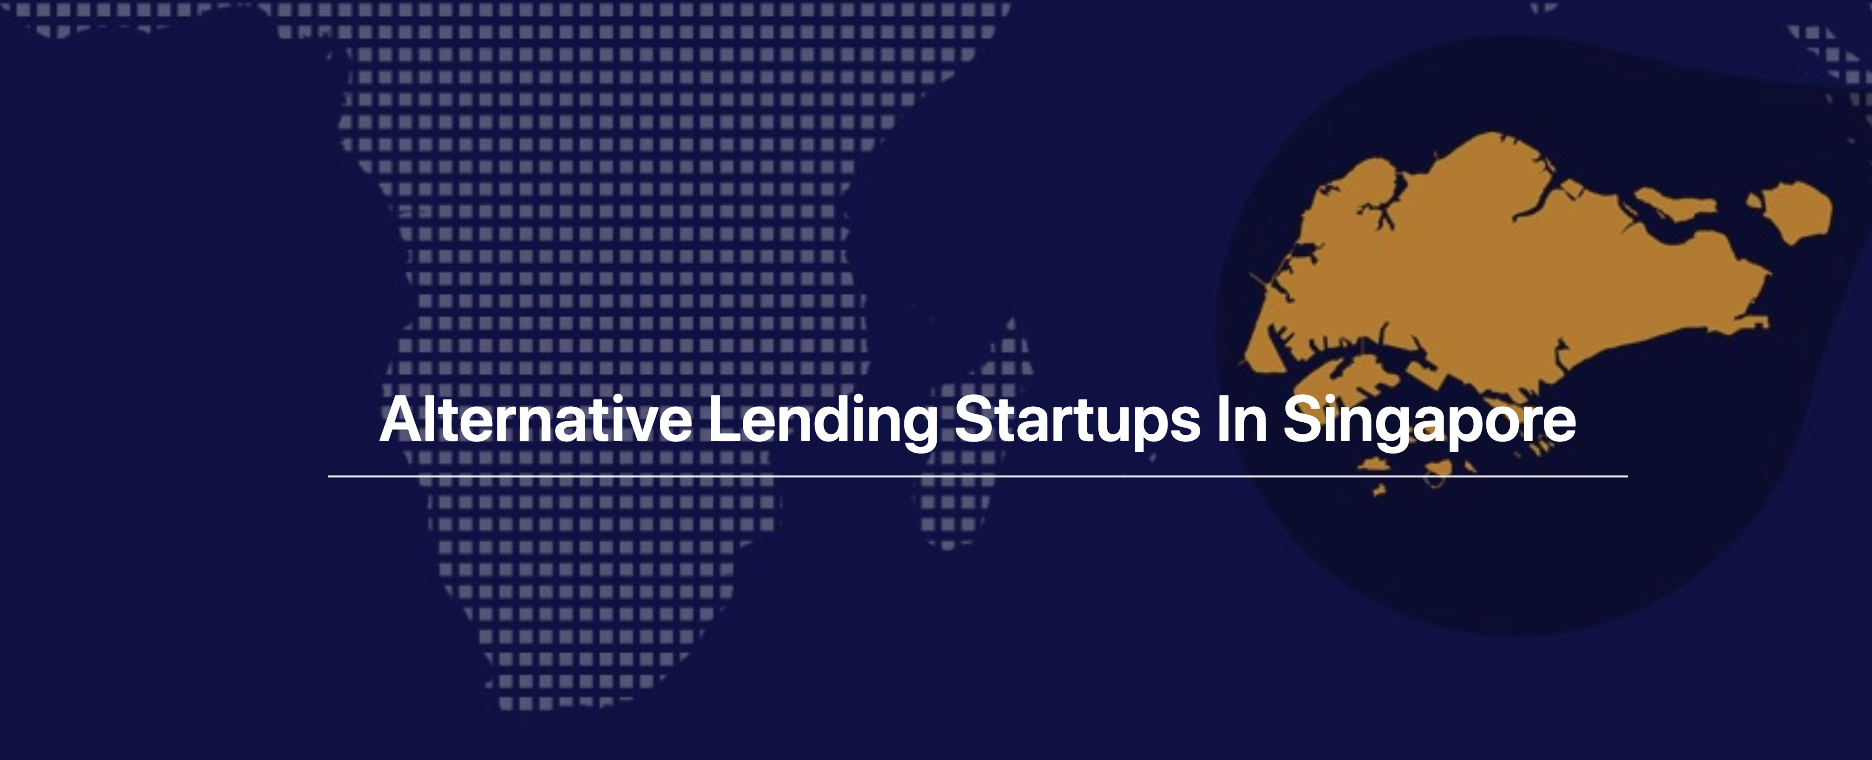 Alternative Lending Startups In Singapore